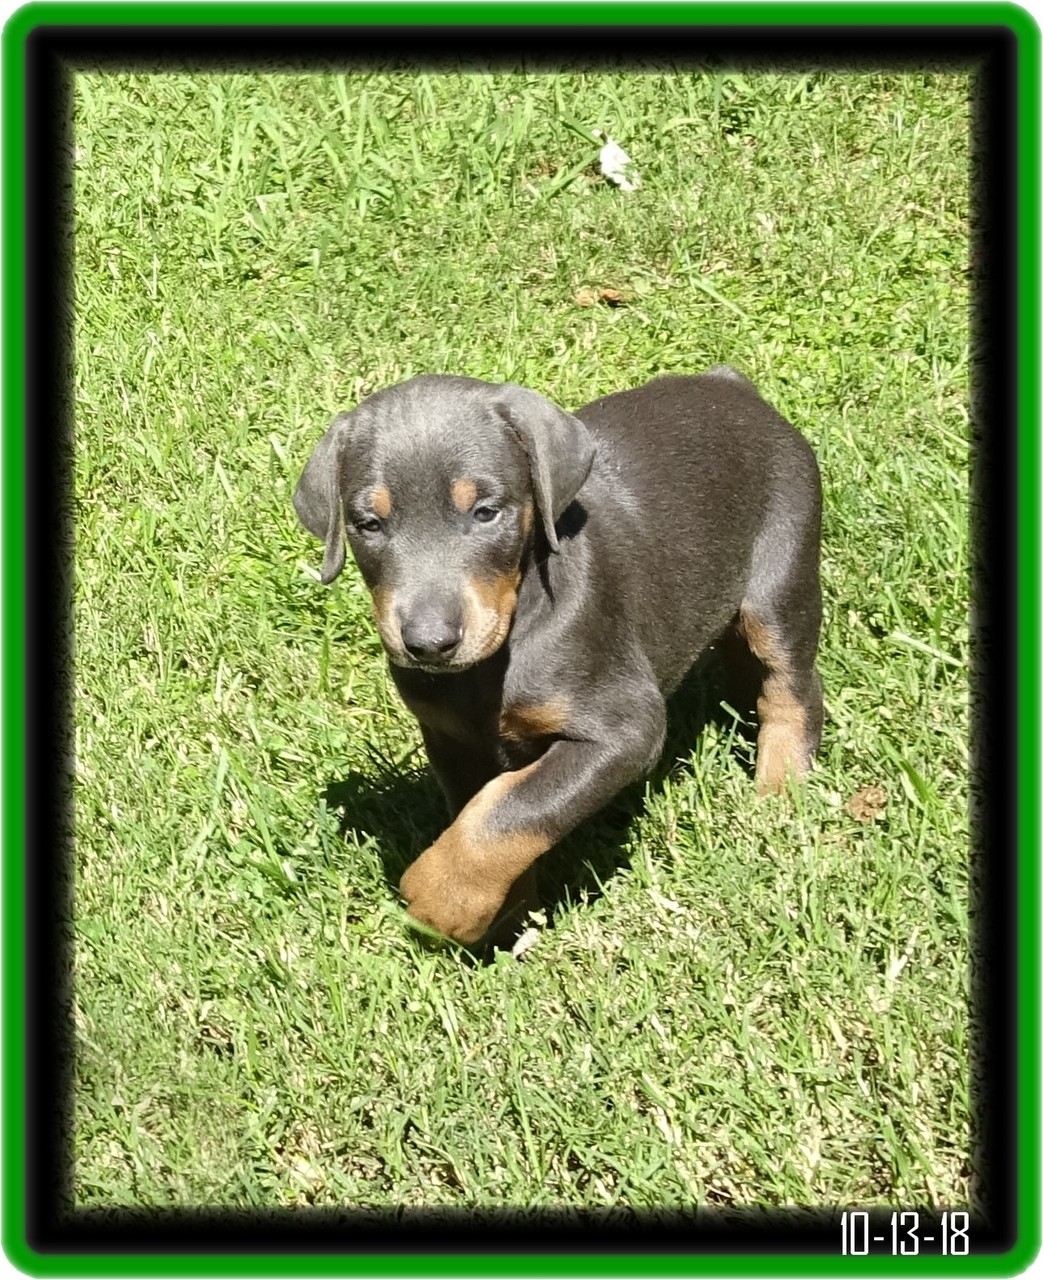 Indy Zoey pup... reserved /  Laguna Niguel CA - will finish his SP2 program first.